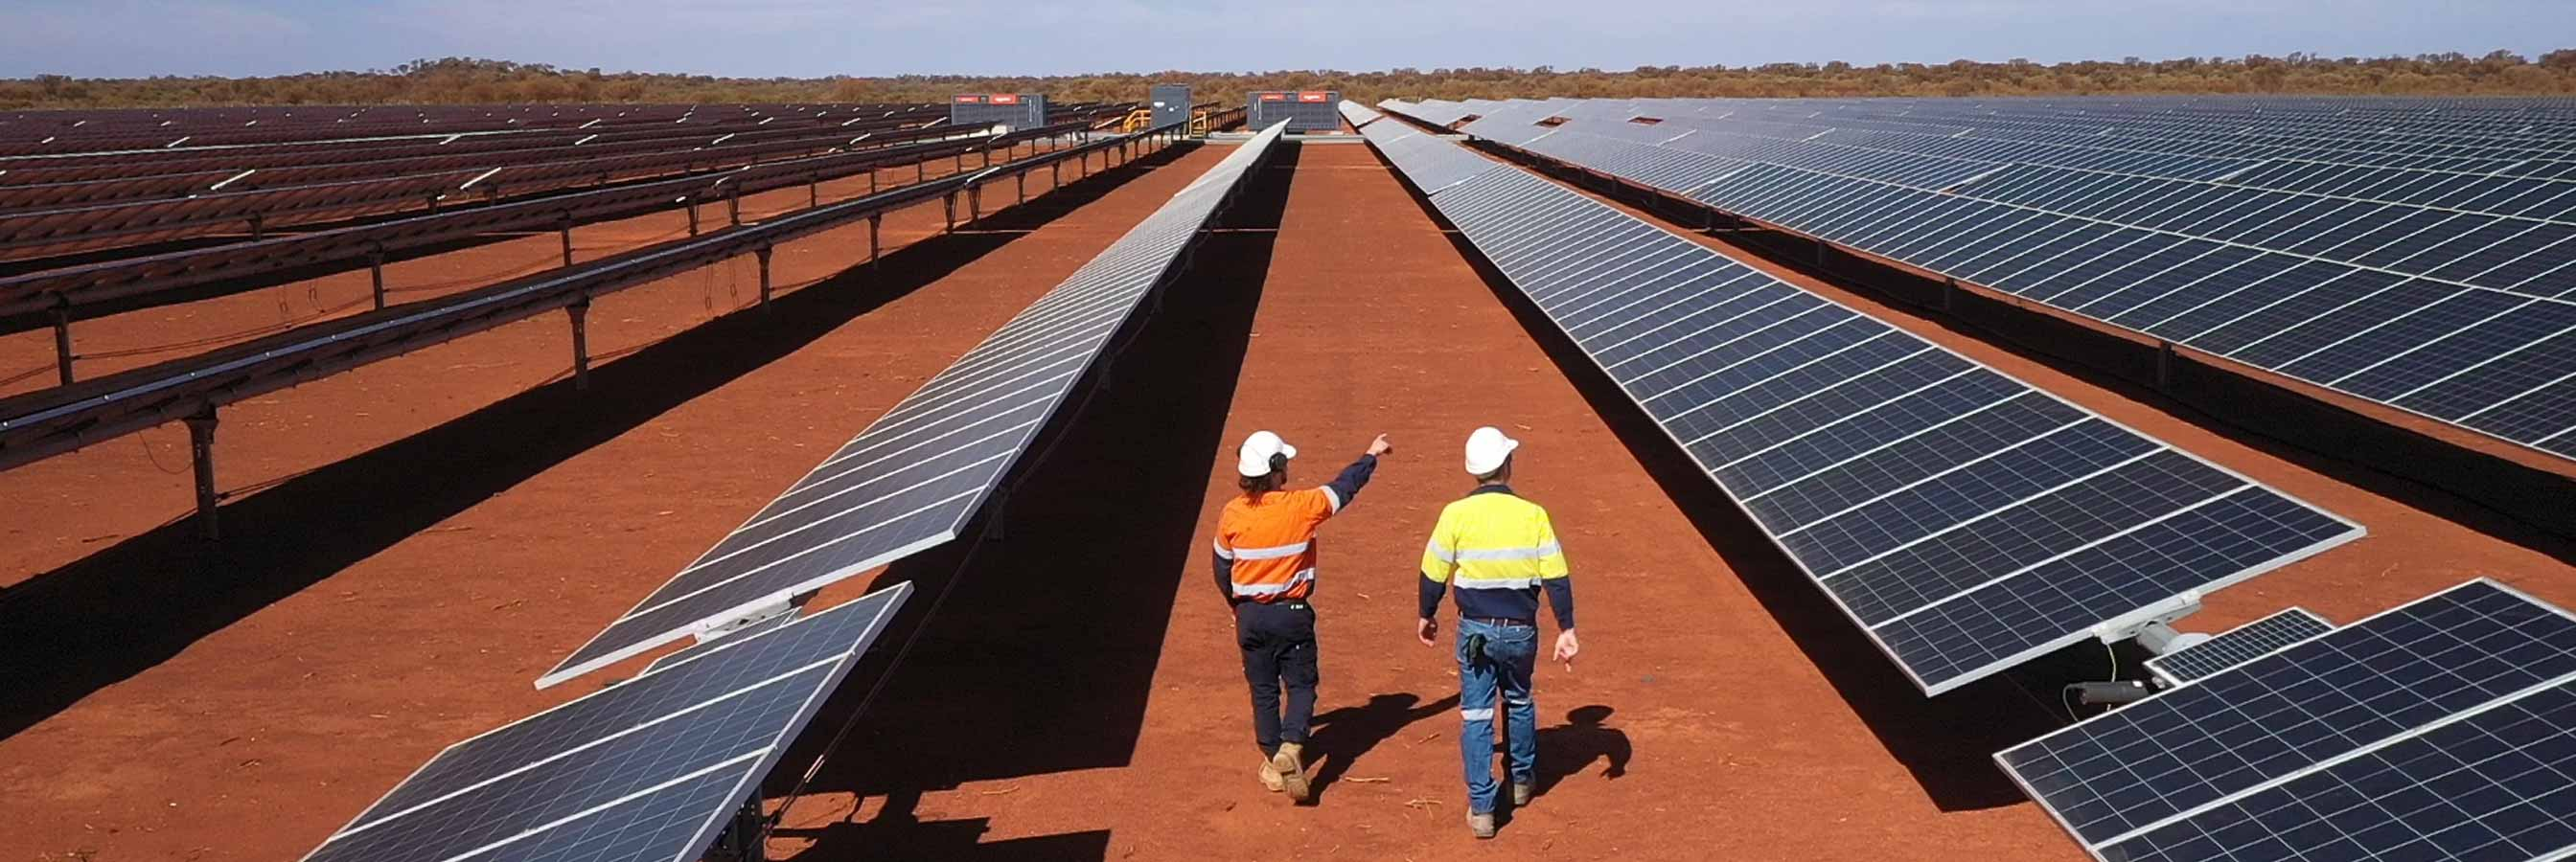 Two work people walking amongst solar panels